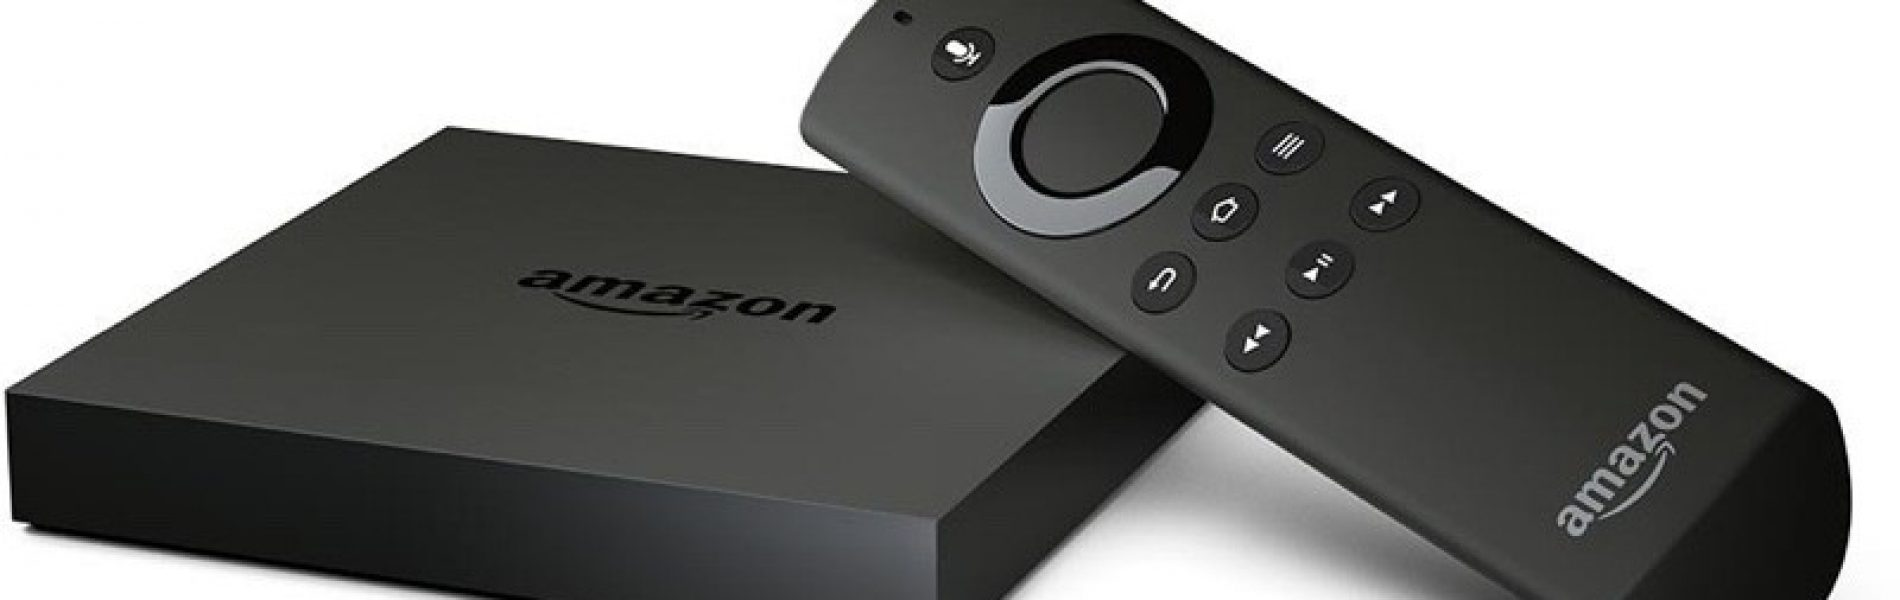 Amazon to Cease Selling Apple TV, Google Chromecast Over 'Prime Video' Incompatibility